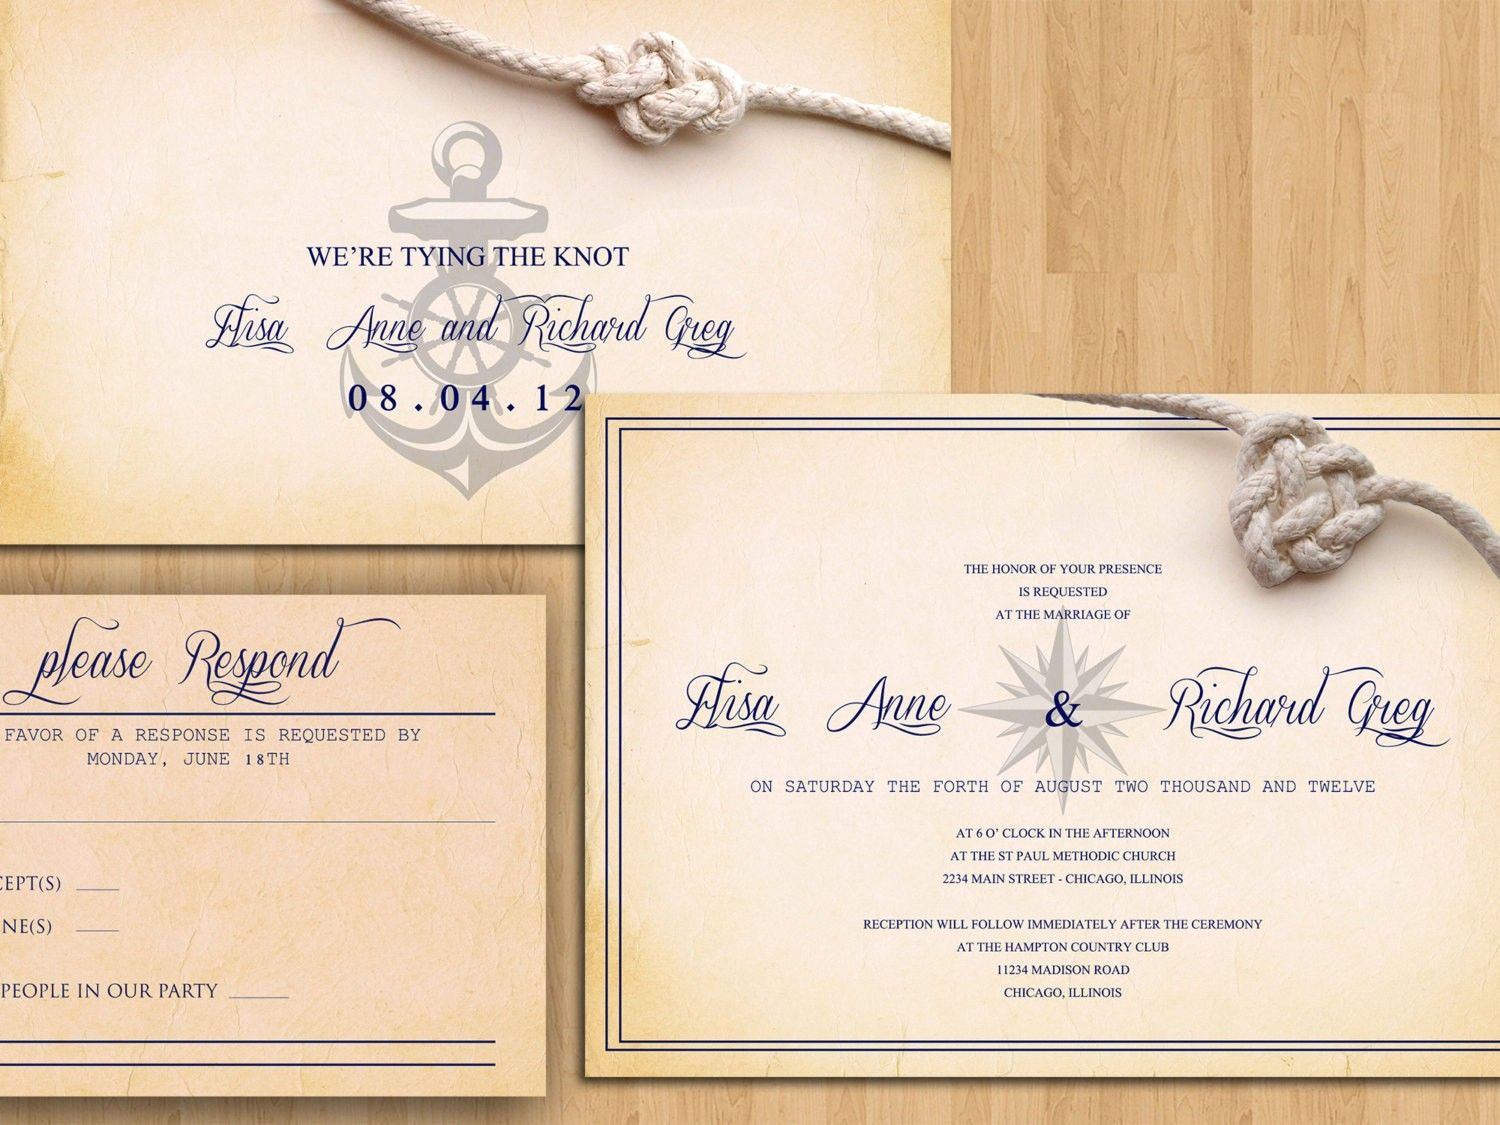 Printable Wedding Invitations Kits: Printable Wedding Invitations